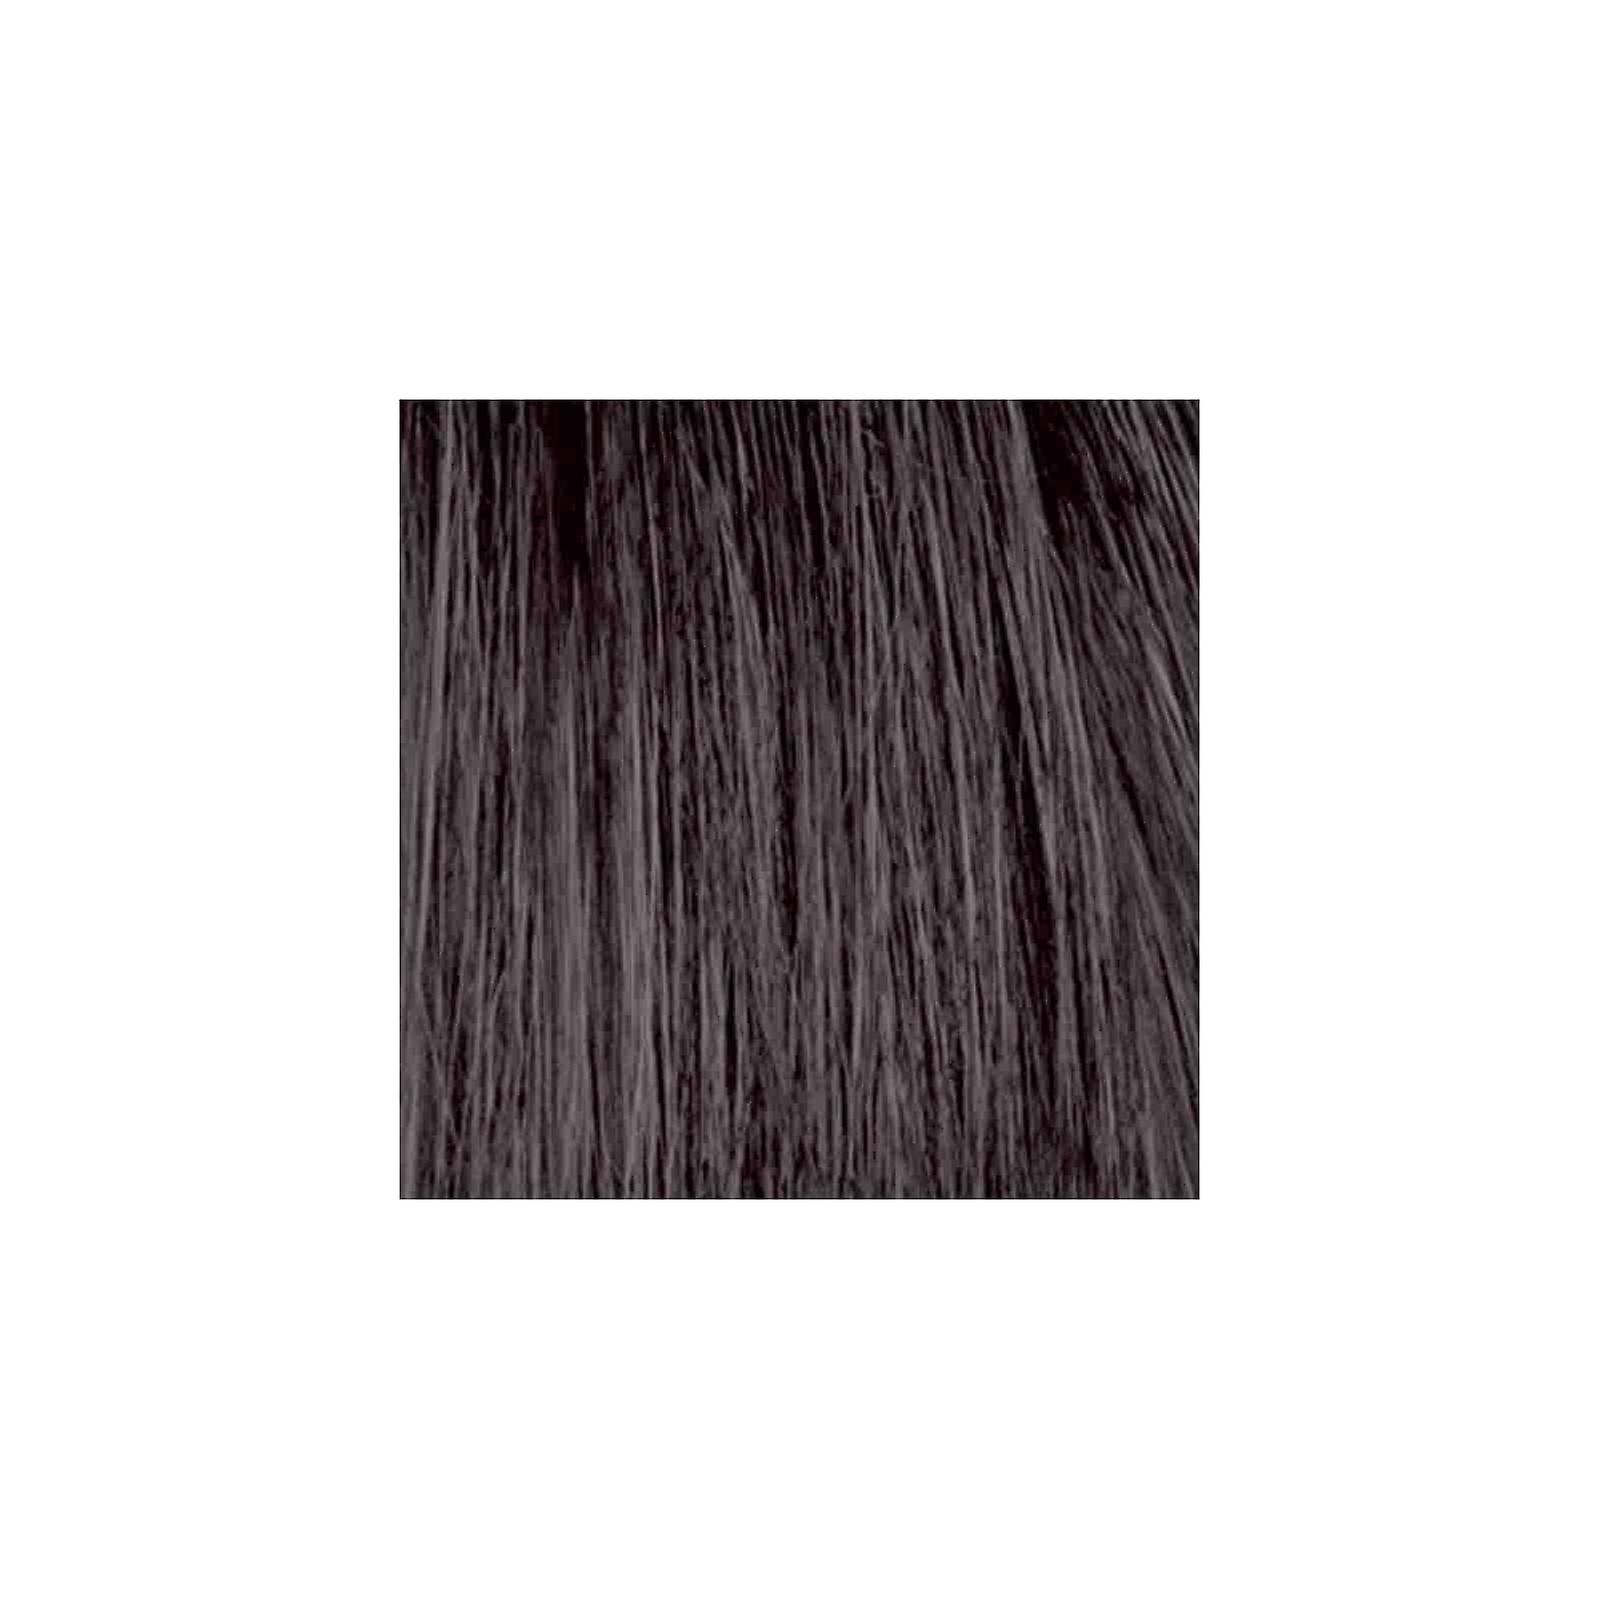 Stargazer Hair Dye -  Pitch Black With Tint Brush